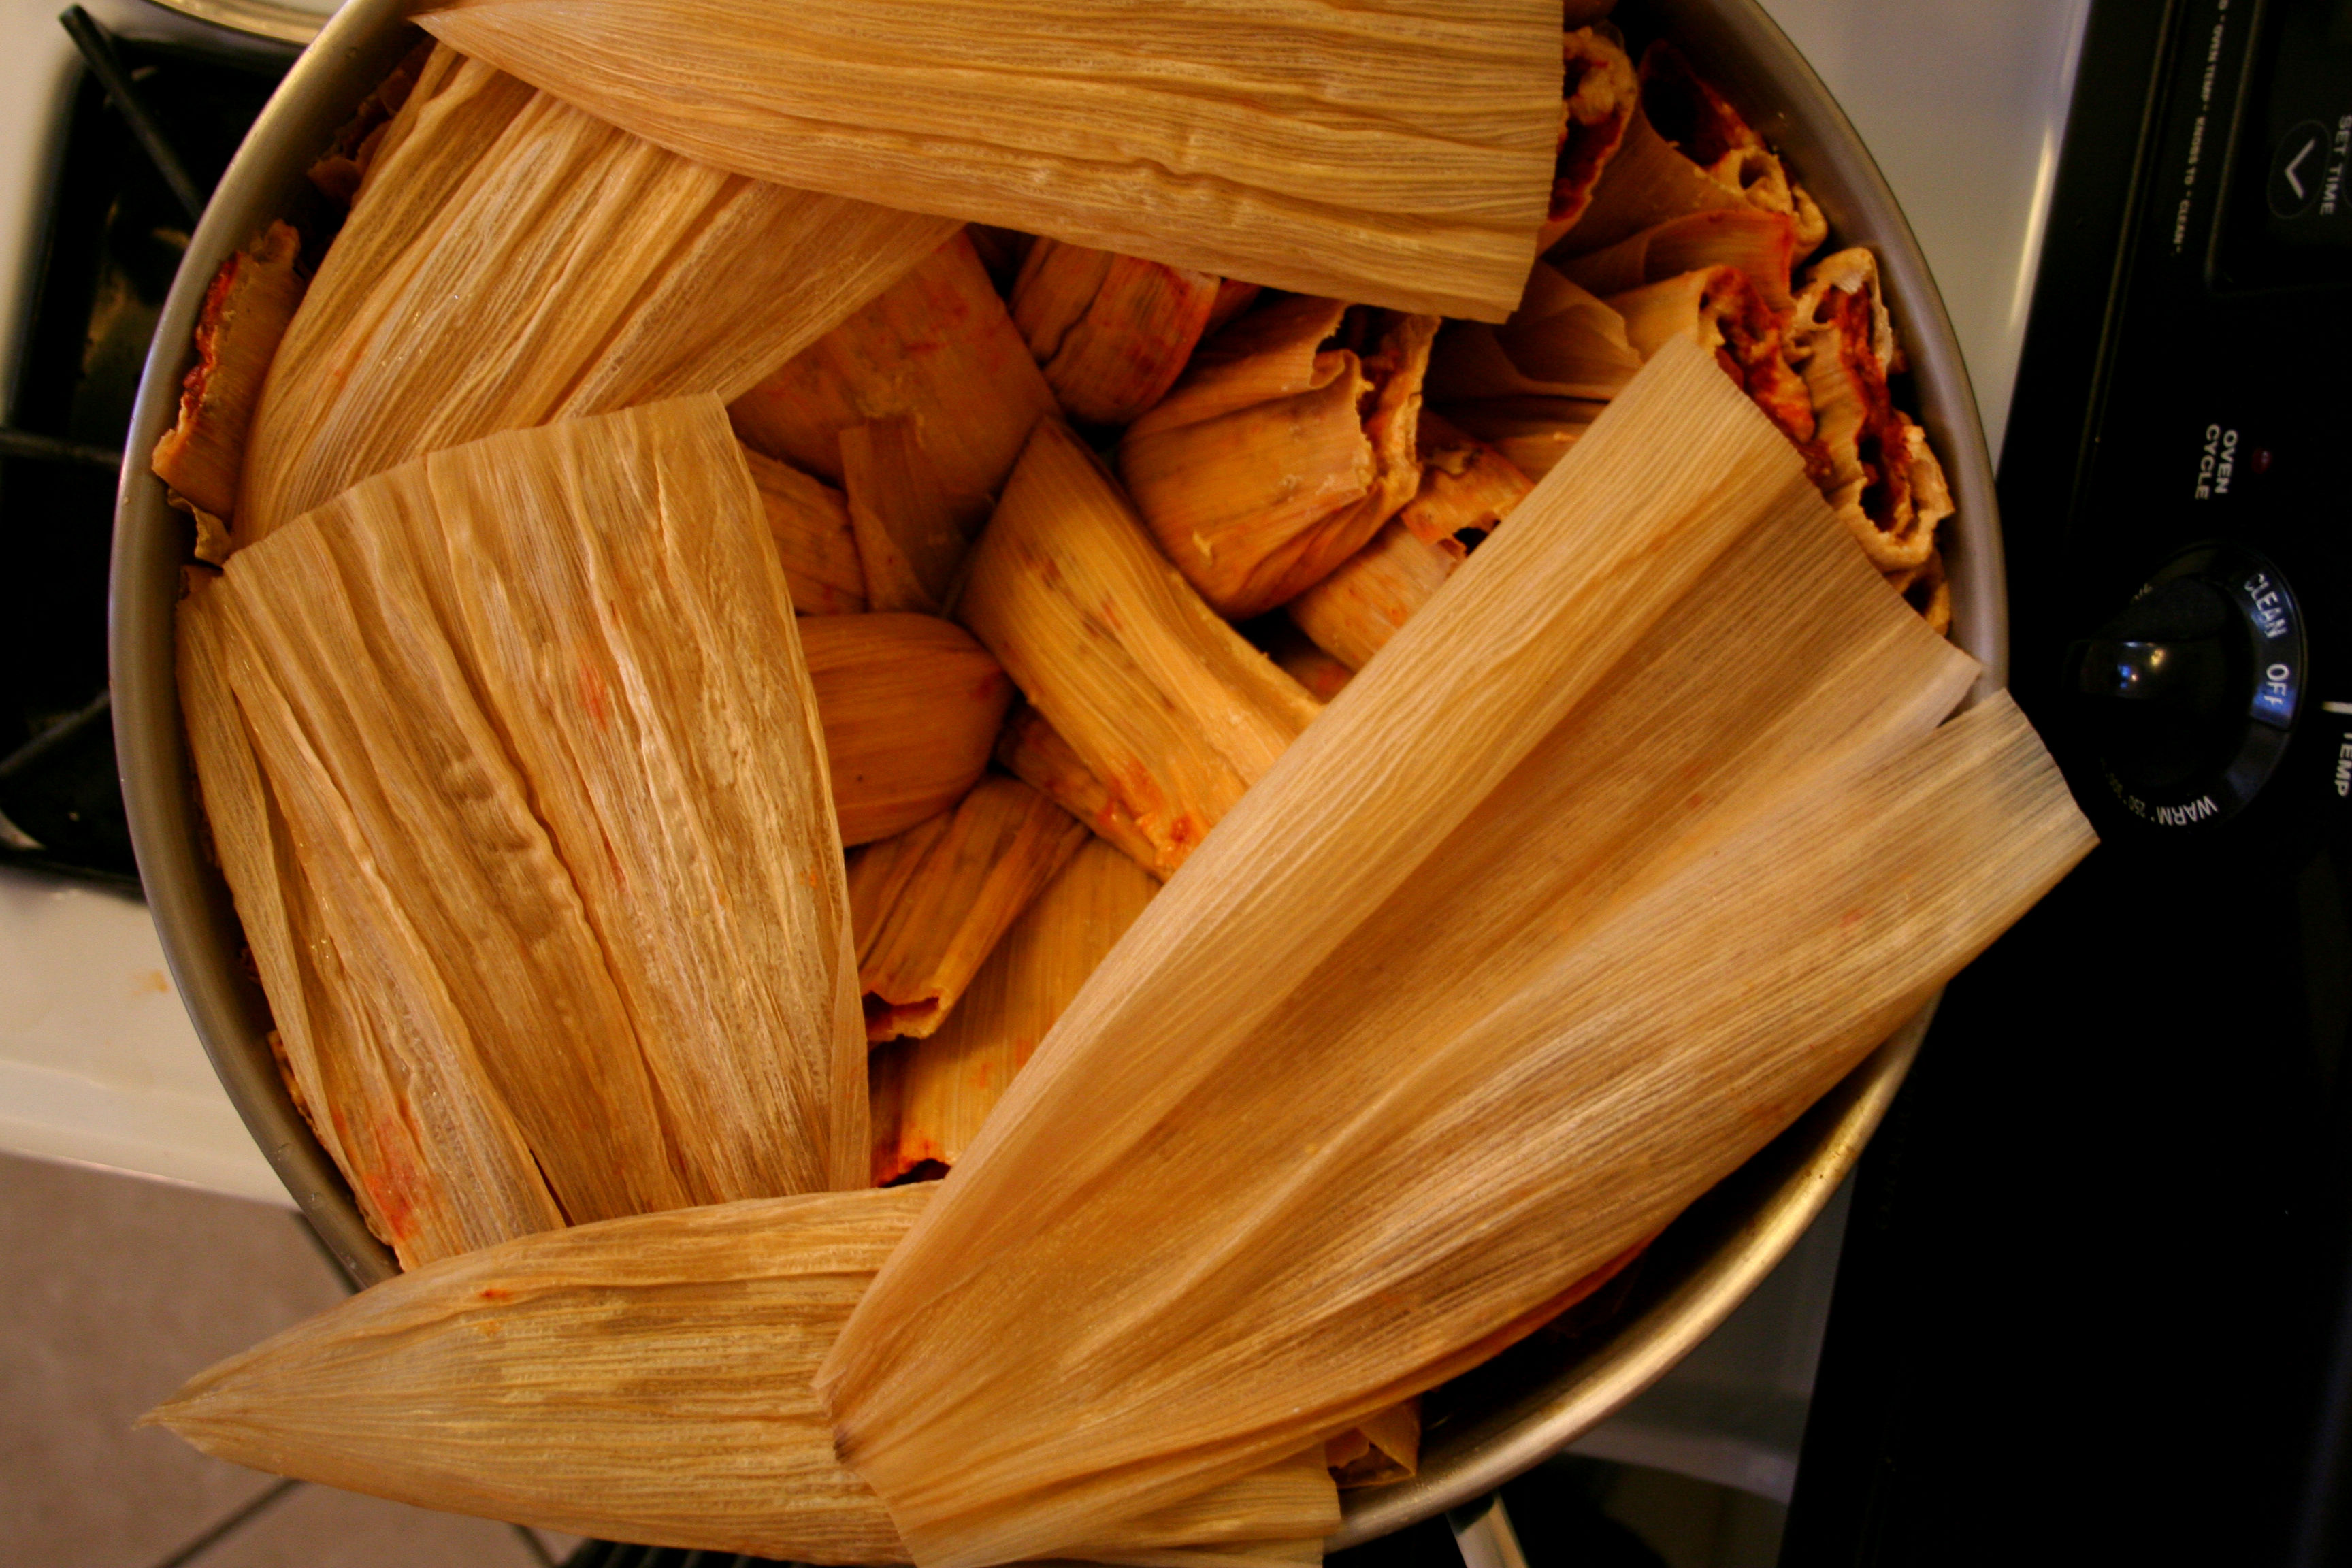 Tamales covered in husks